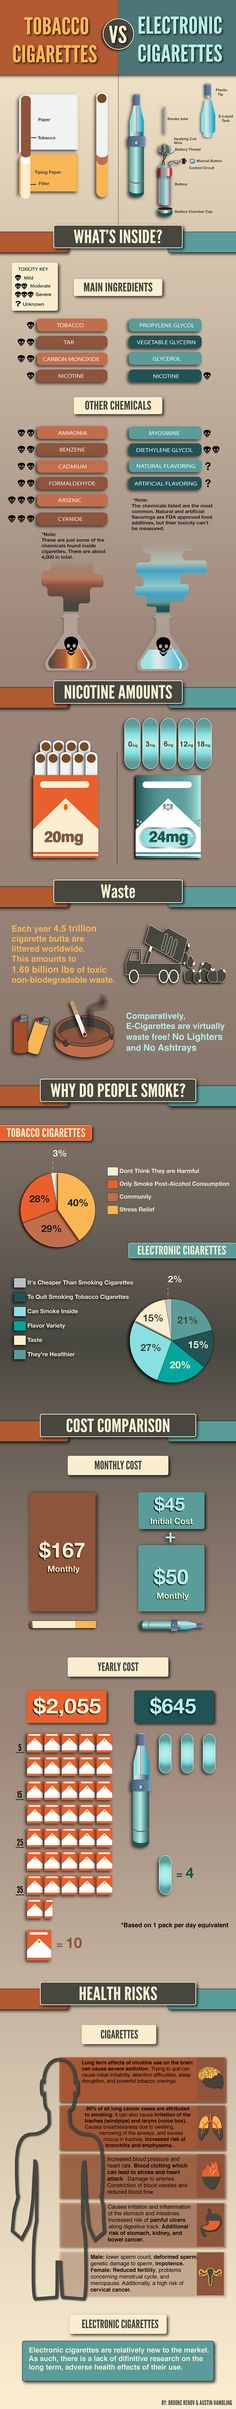 An infographic comparing Tobacco Cigarettes & Electronic Cigarettes by Brooke Renov & Austin Hambling. We analyzed multiple data sets over several weeks. Any critique or advice would be appreciated! Don't be afraid to make negative critiques! #graphicdesign #infographics #infographic #digitalillustration #adobe #illustrator #smoking #cigarettes #tobacco #ecigarettes #electroniccigarettes #art #design #graphics #comparison